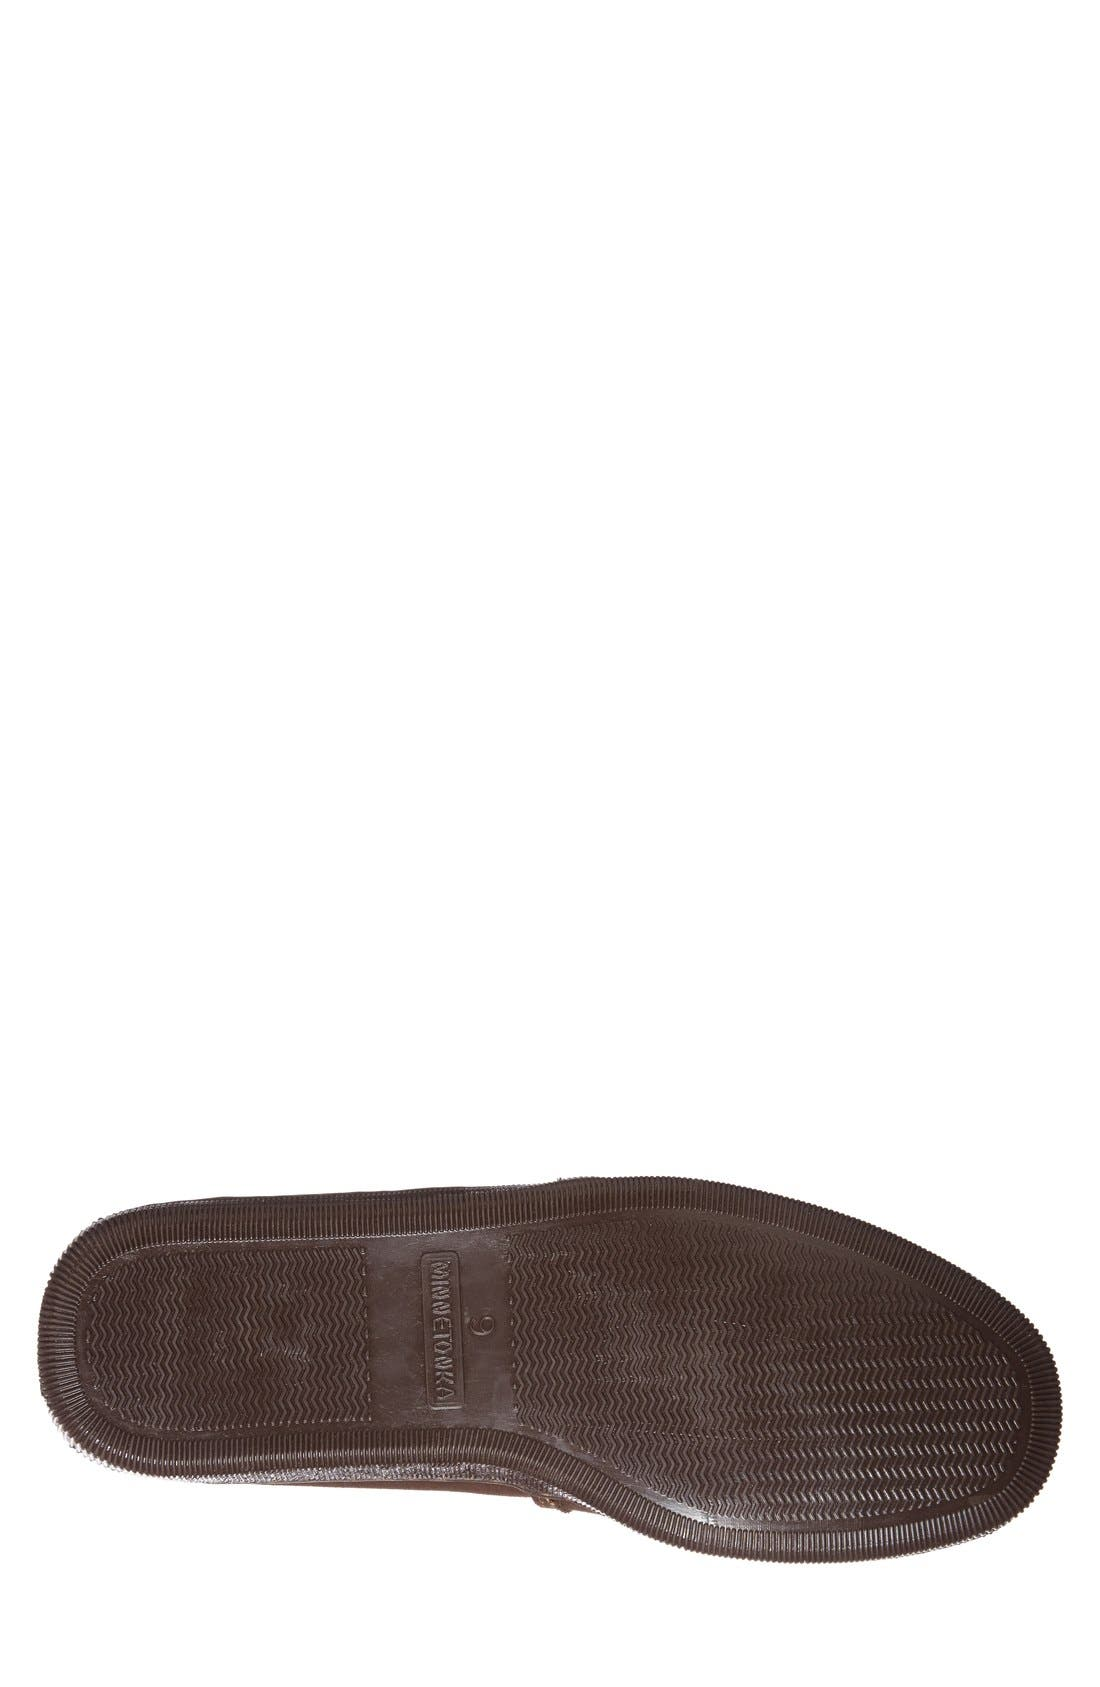 Suede Slipper,                             Alternate thumbnail 2, color,                             CHOCOLATE